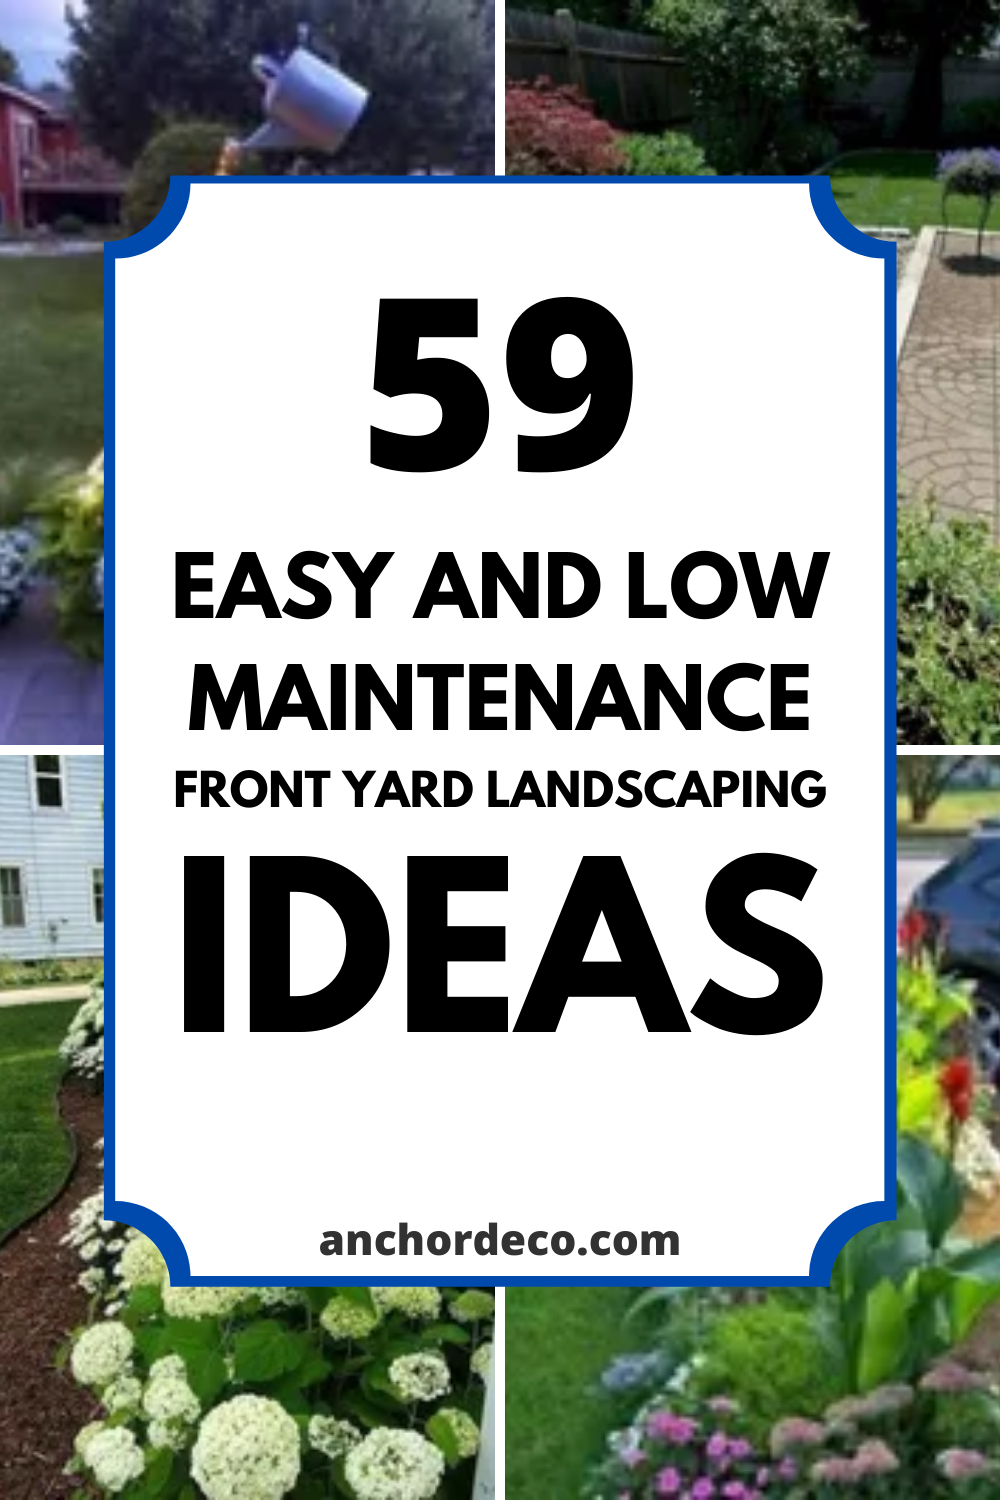 21 Easy And Low Maintenance Front Yard Landscaping Ideas